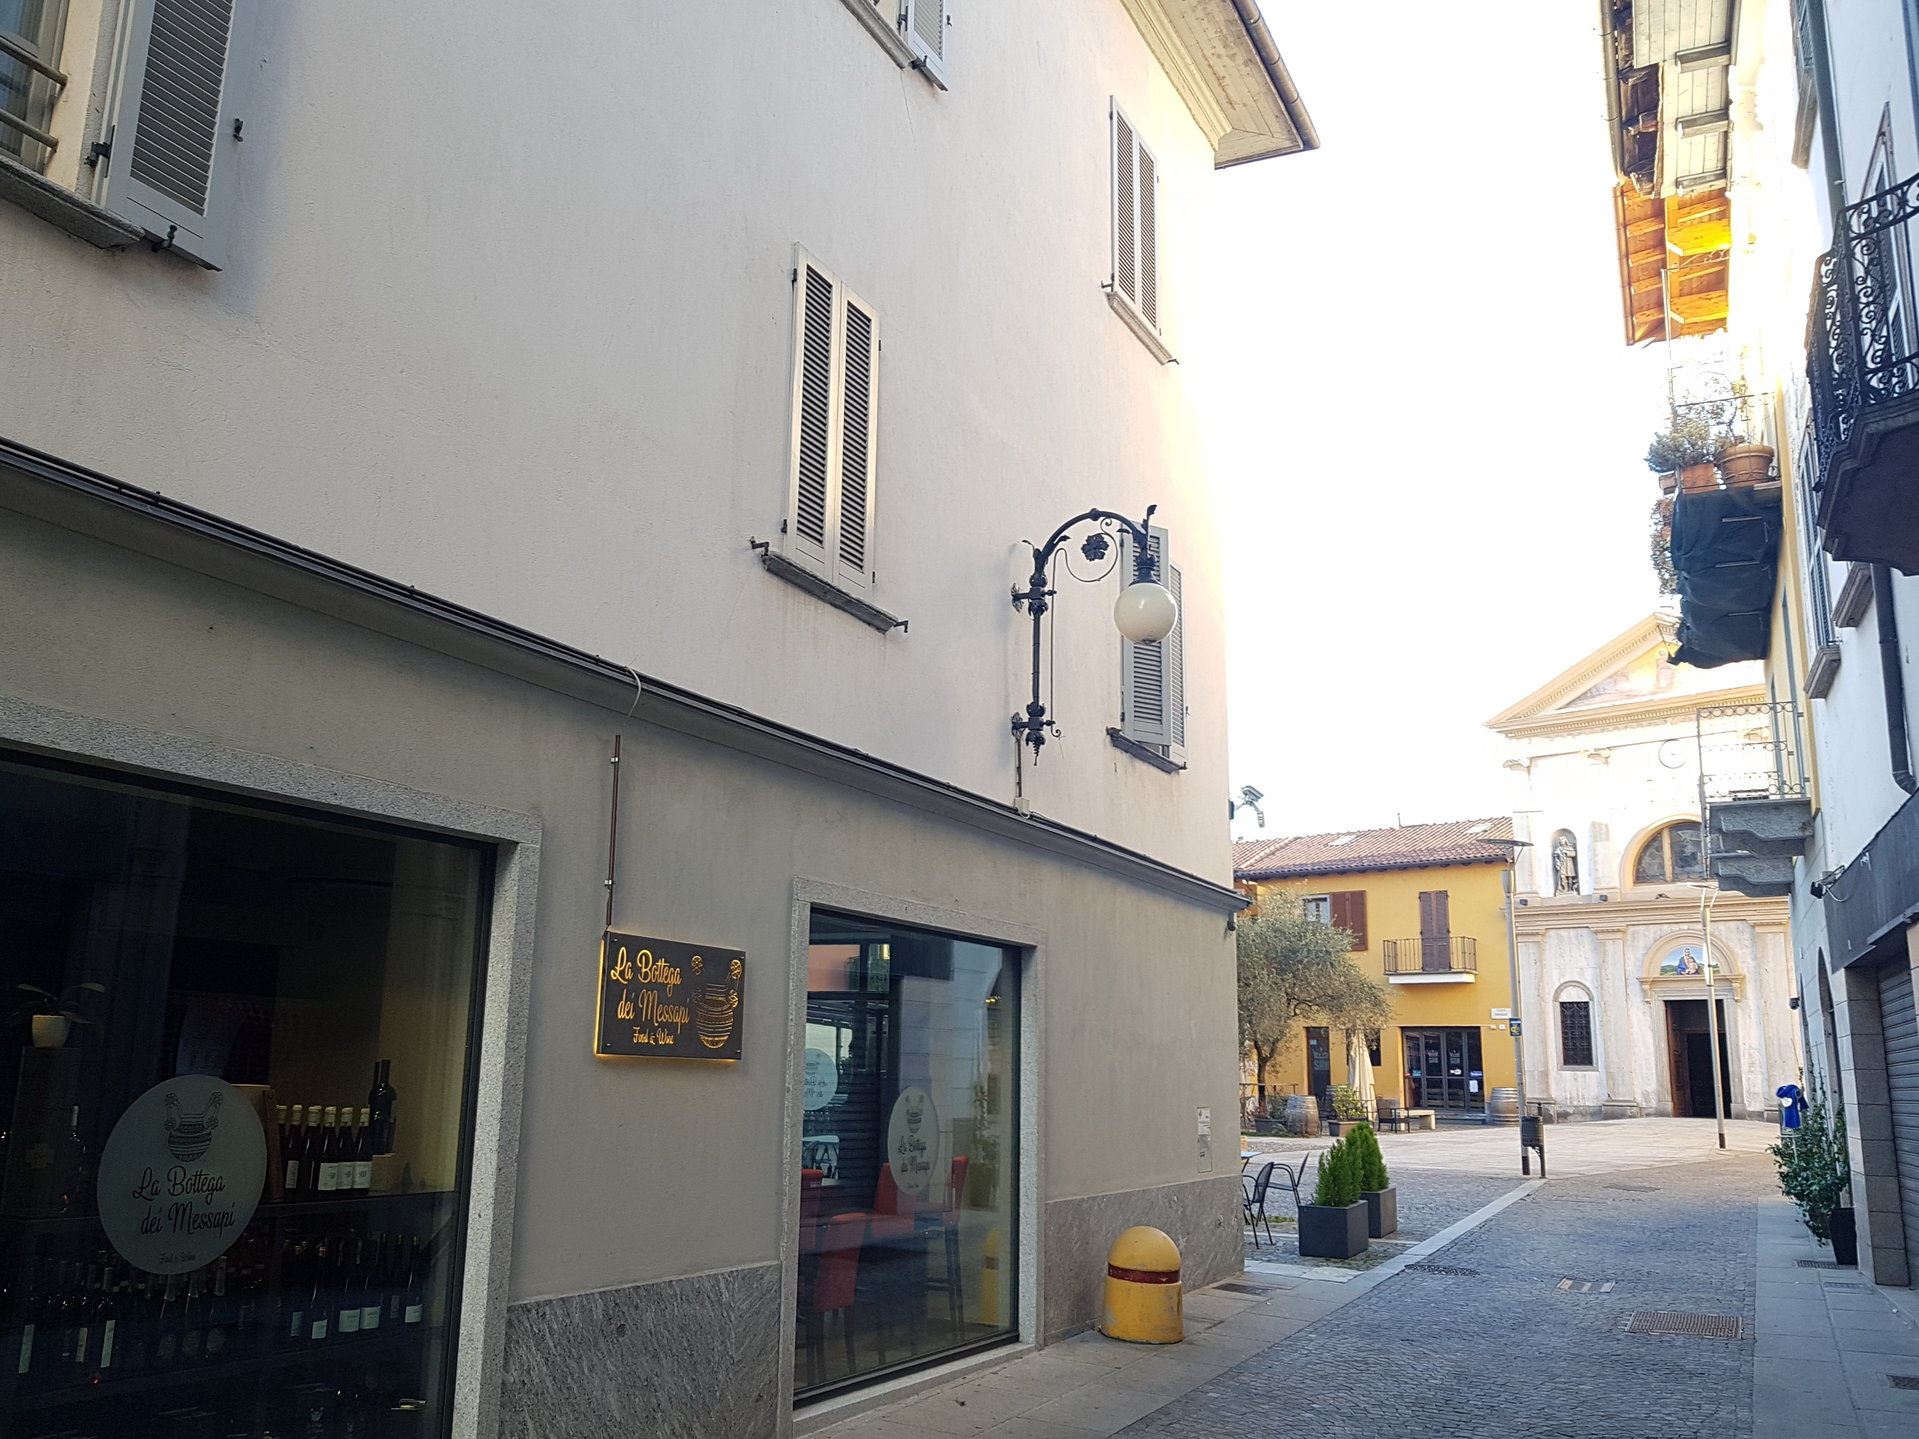 Renovated apartment for sale in Verbania centre - street view